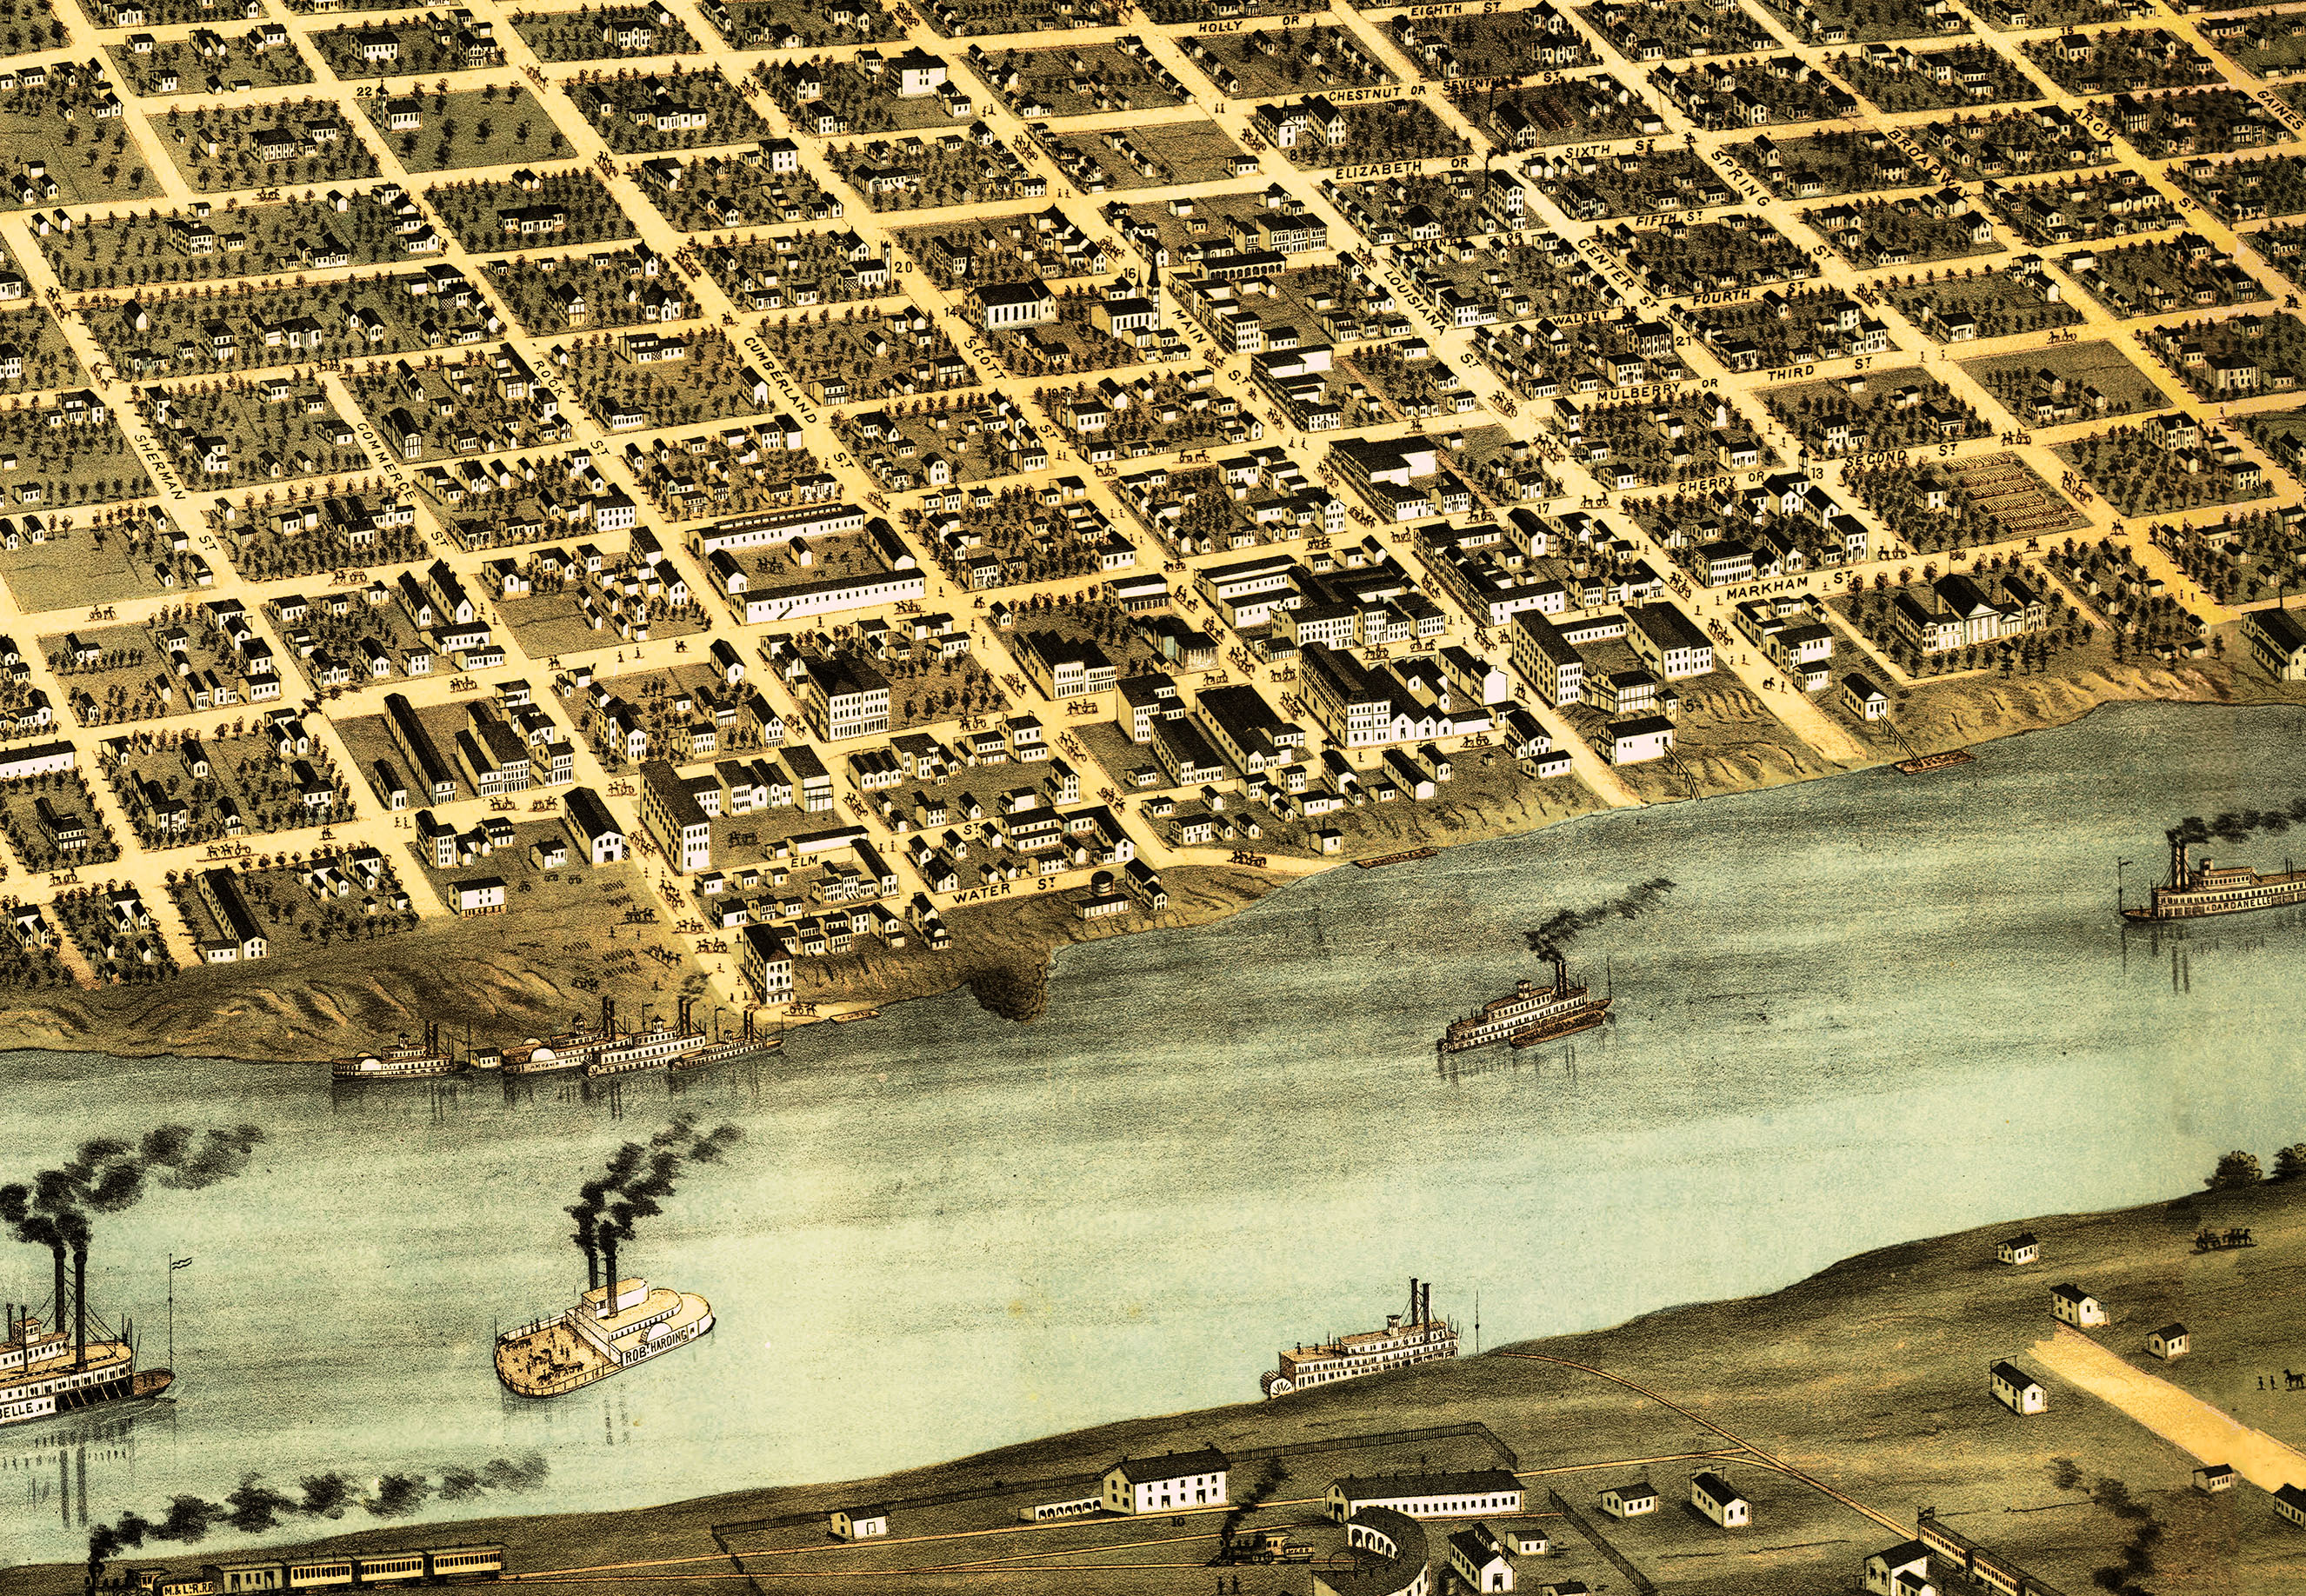 Little Rock, Arkansas in 1871 - Bird\'s Eye View, Aerial, Panorama, Vintage,  Antique Map, Reproduction, Giclée, Fine Art, Wall Map, History from The ...